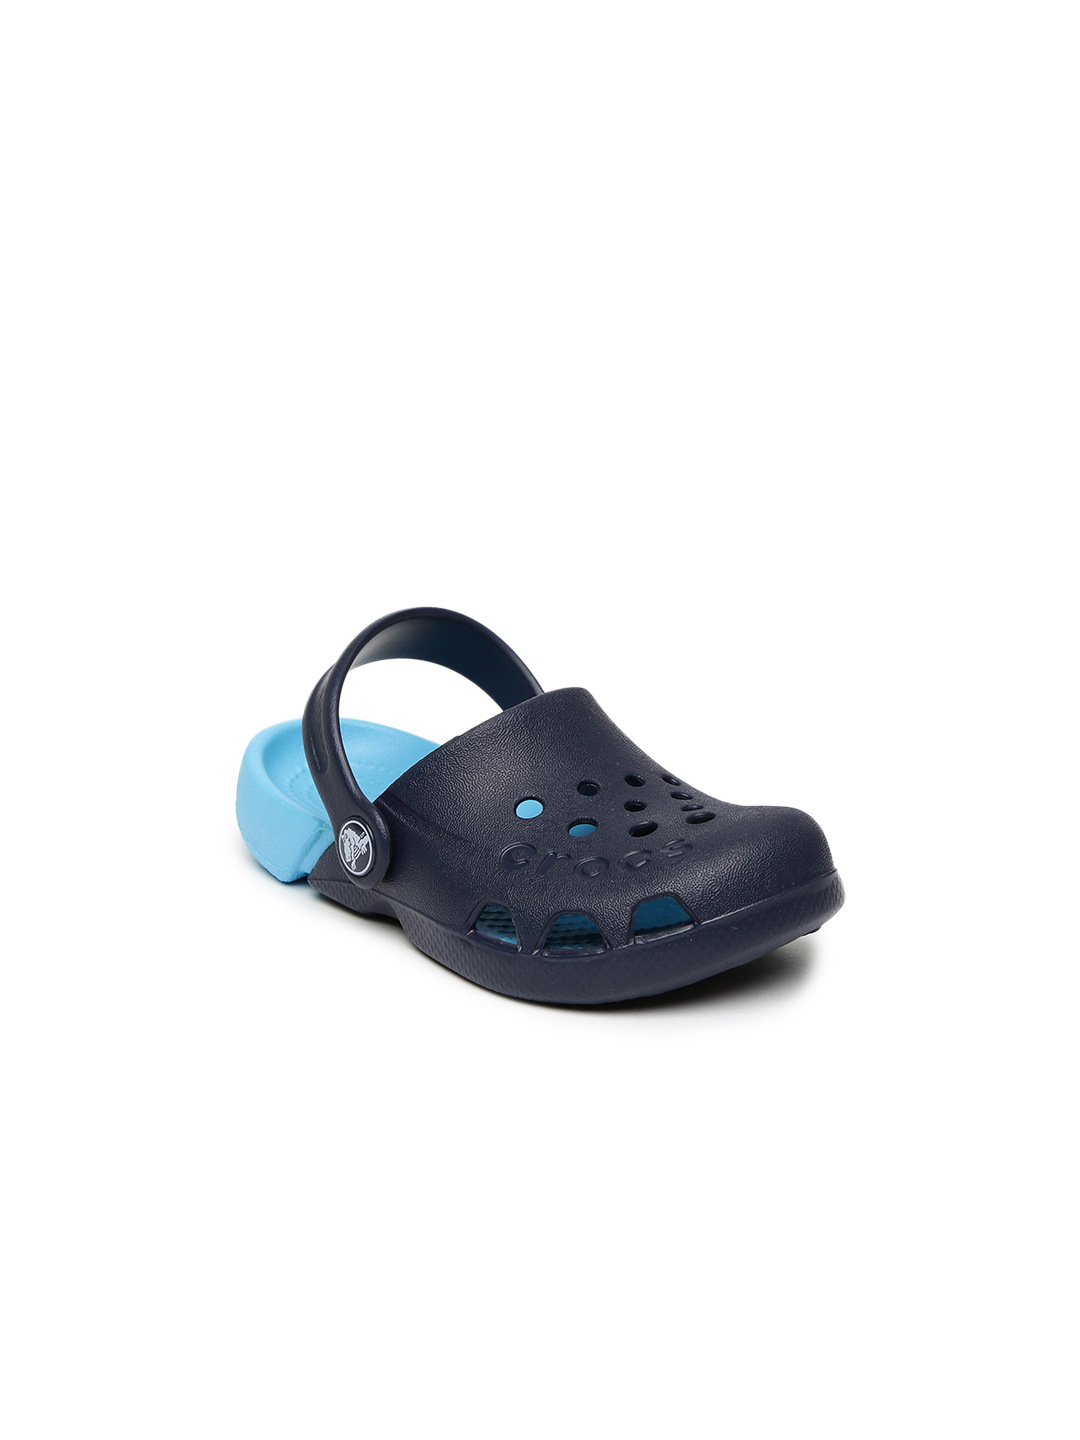 Crocs Kids Navy Clogs